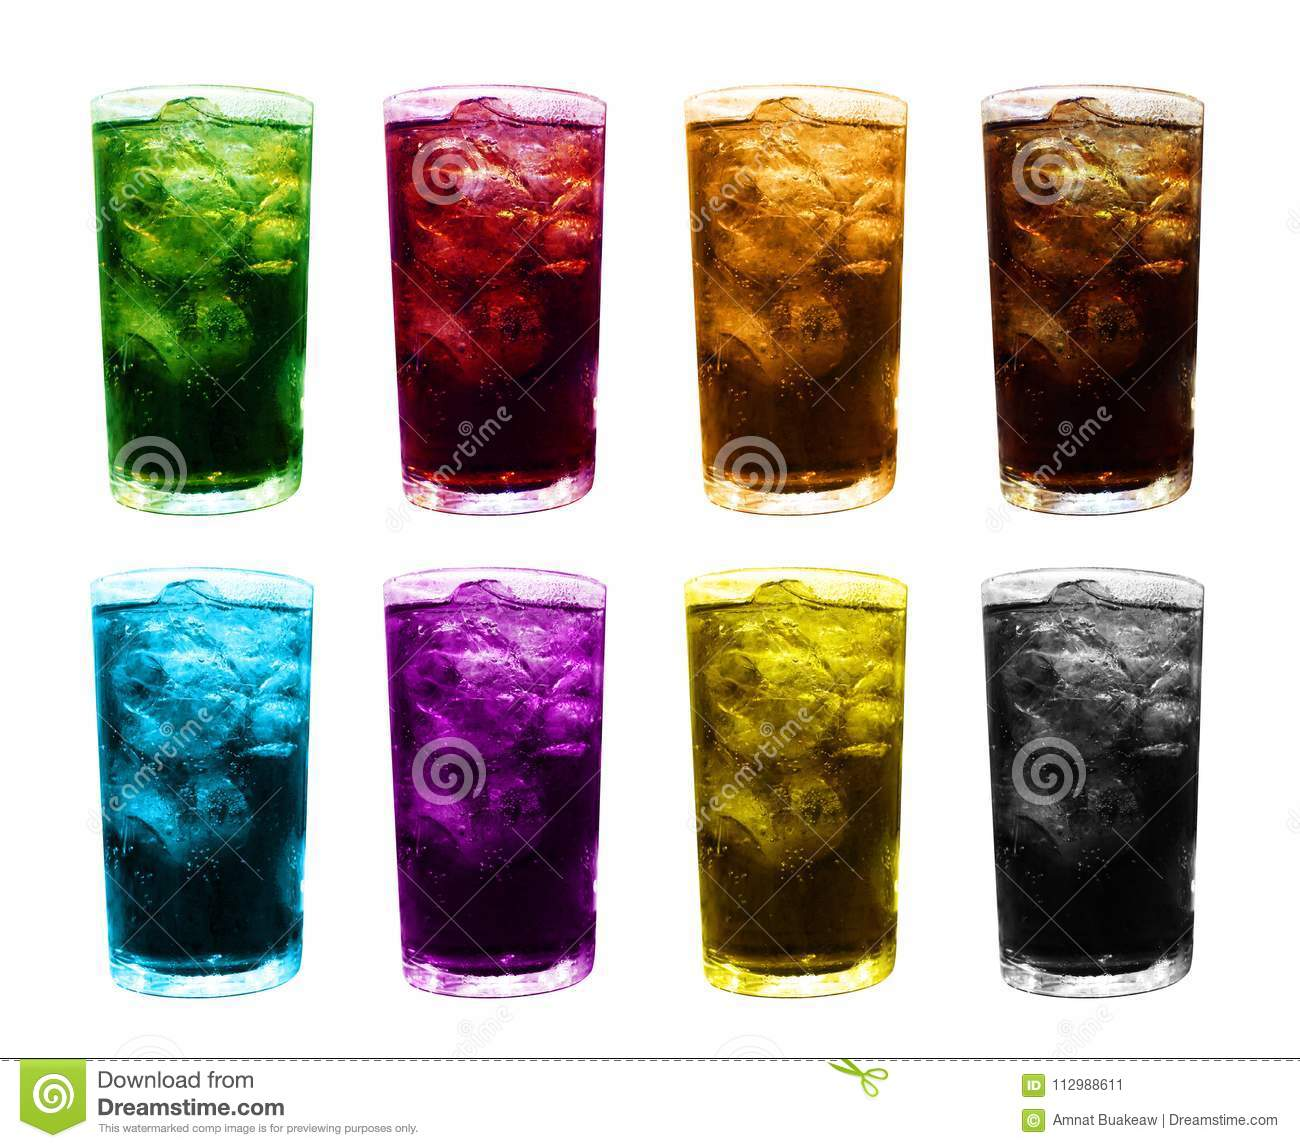 Ice glass water multi color, fruit juice colorful mixed in ice glass, ice tea juice glass, water glasses sweet carbonated dri